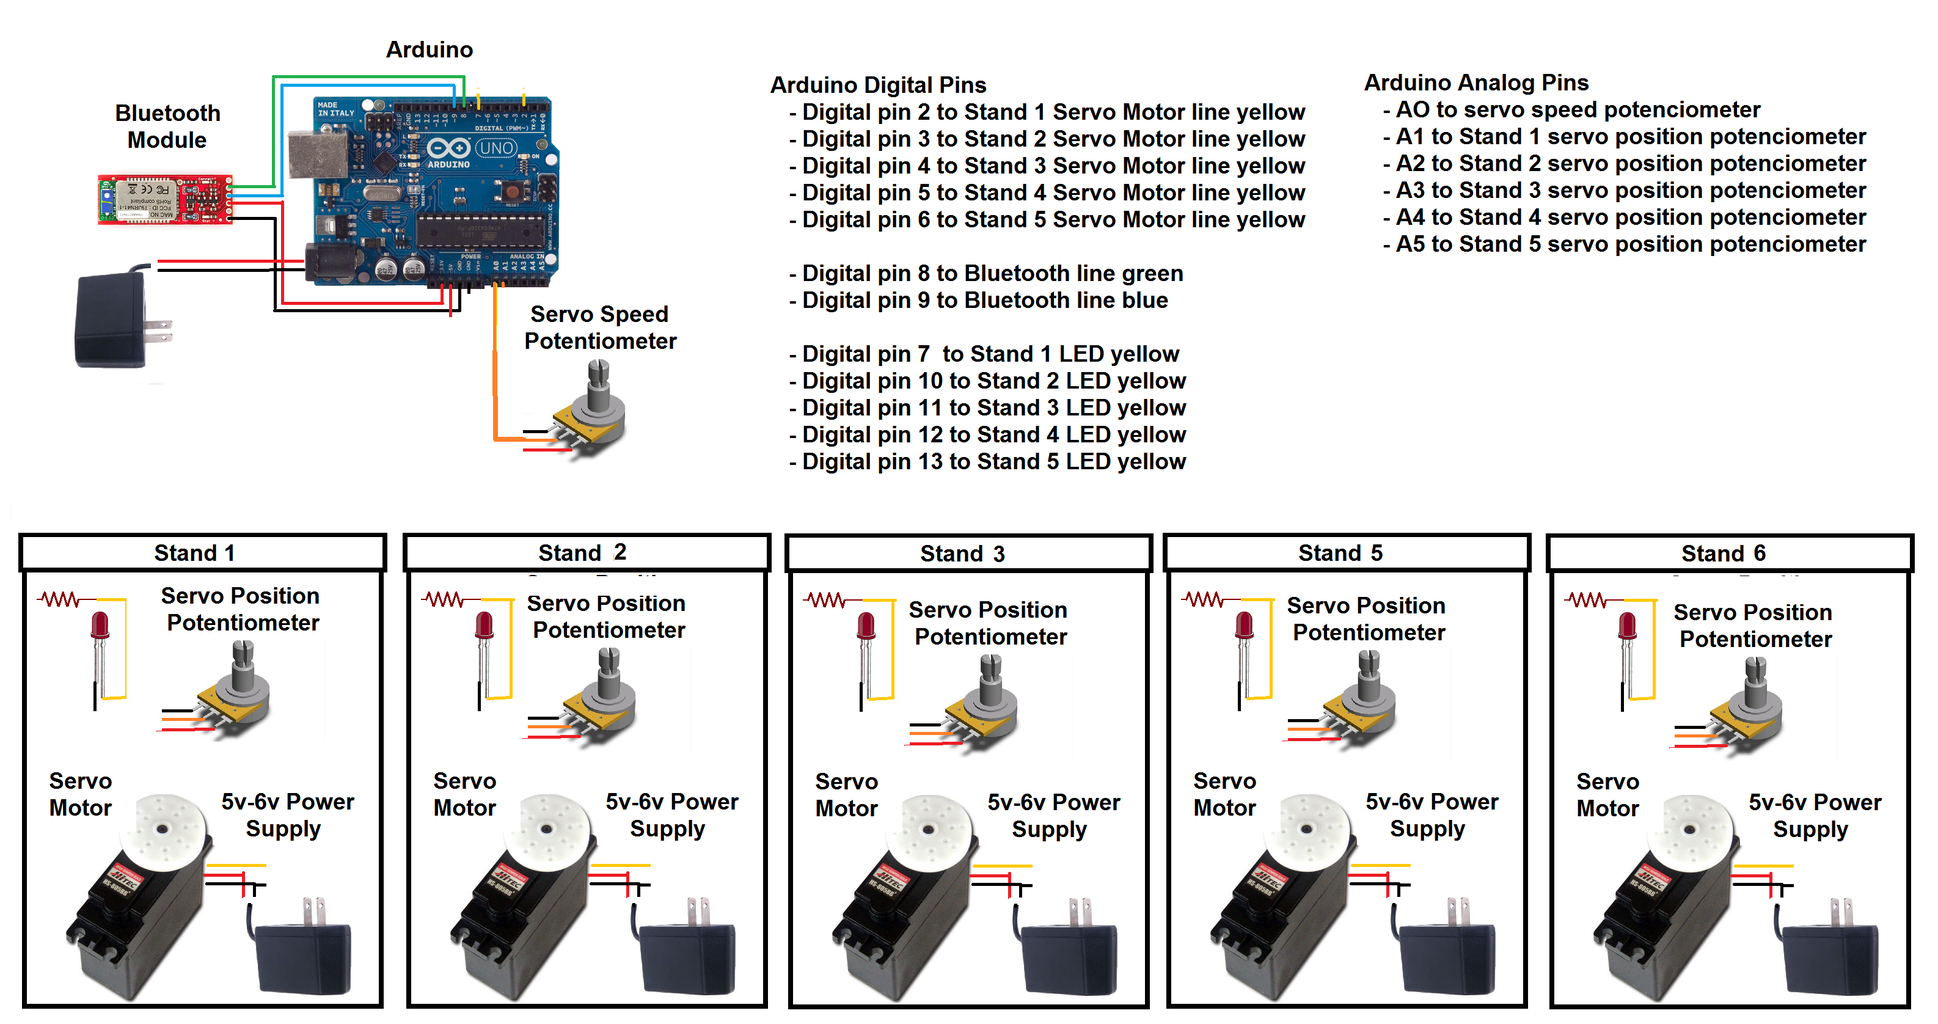 Up to 5 Stands - Electronic Schematic